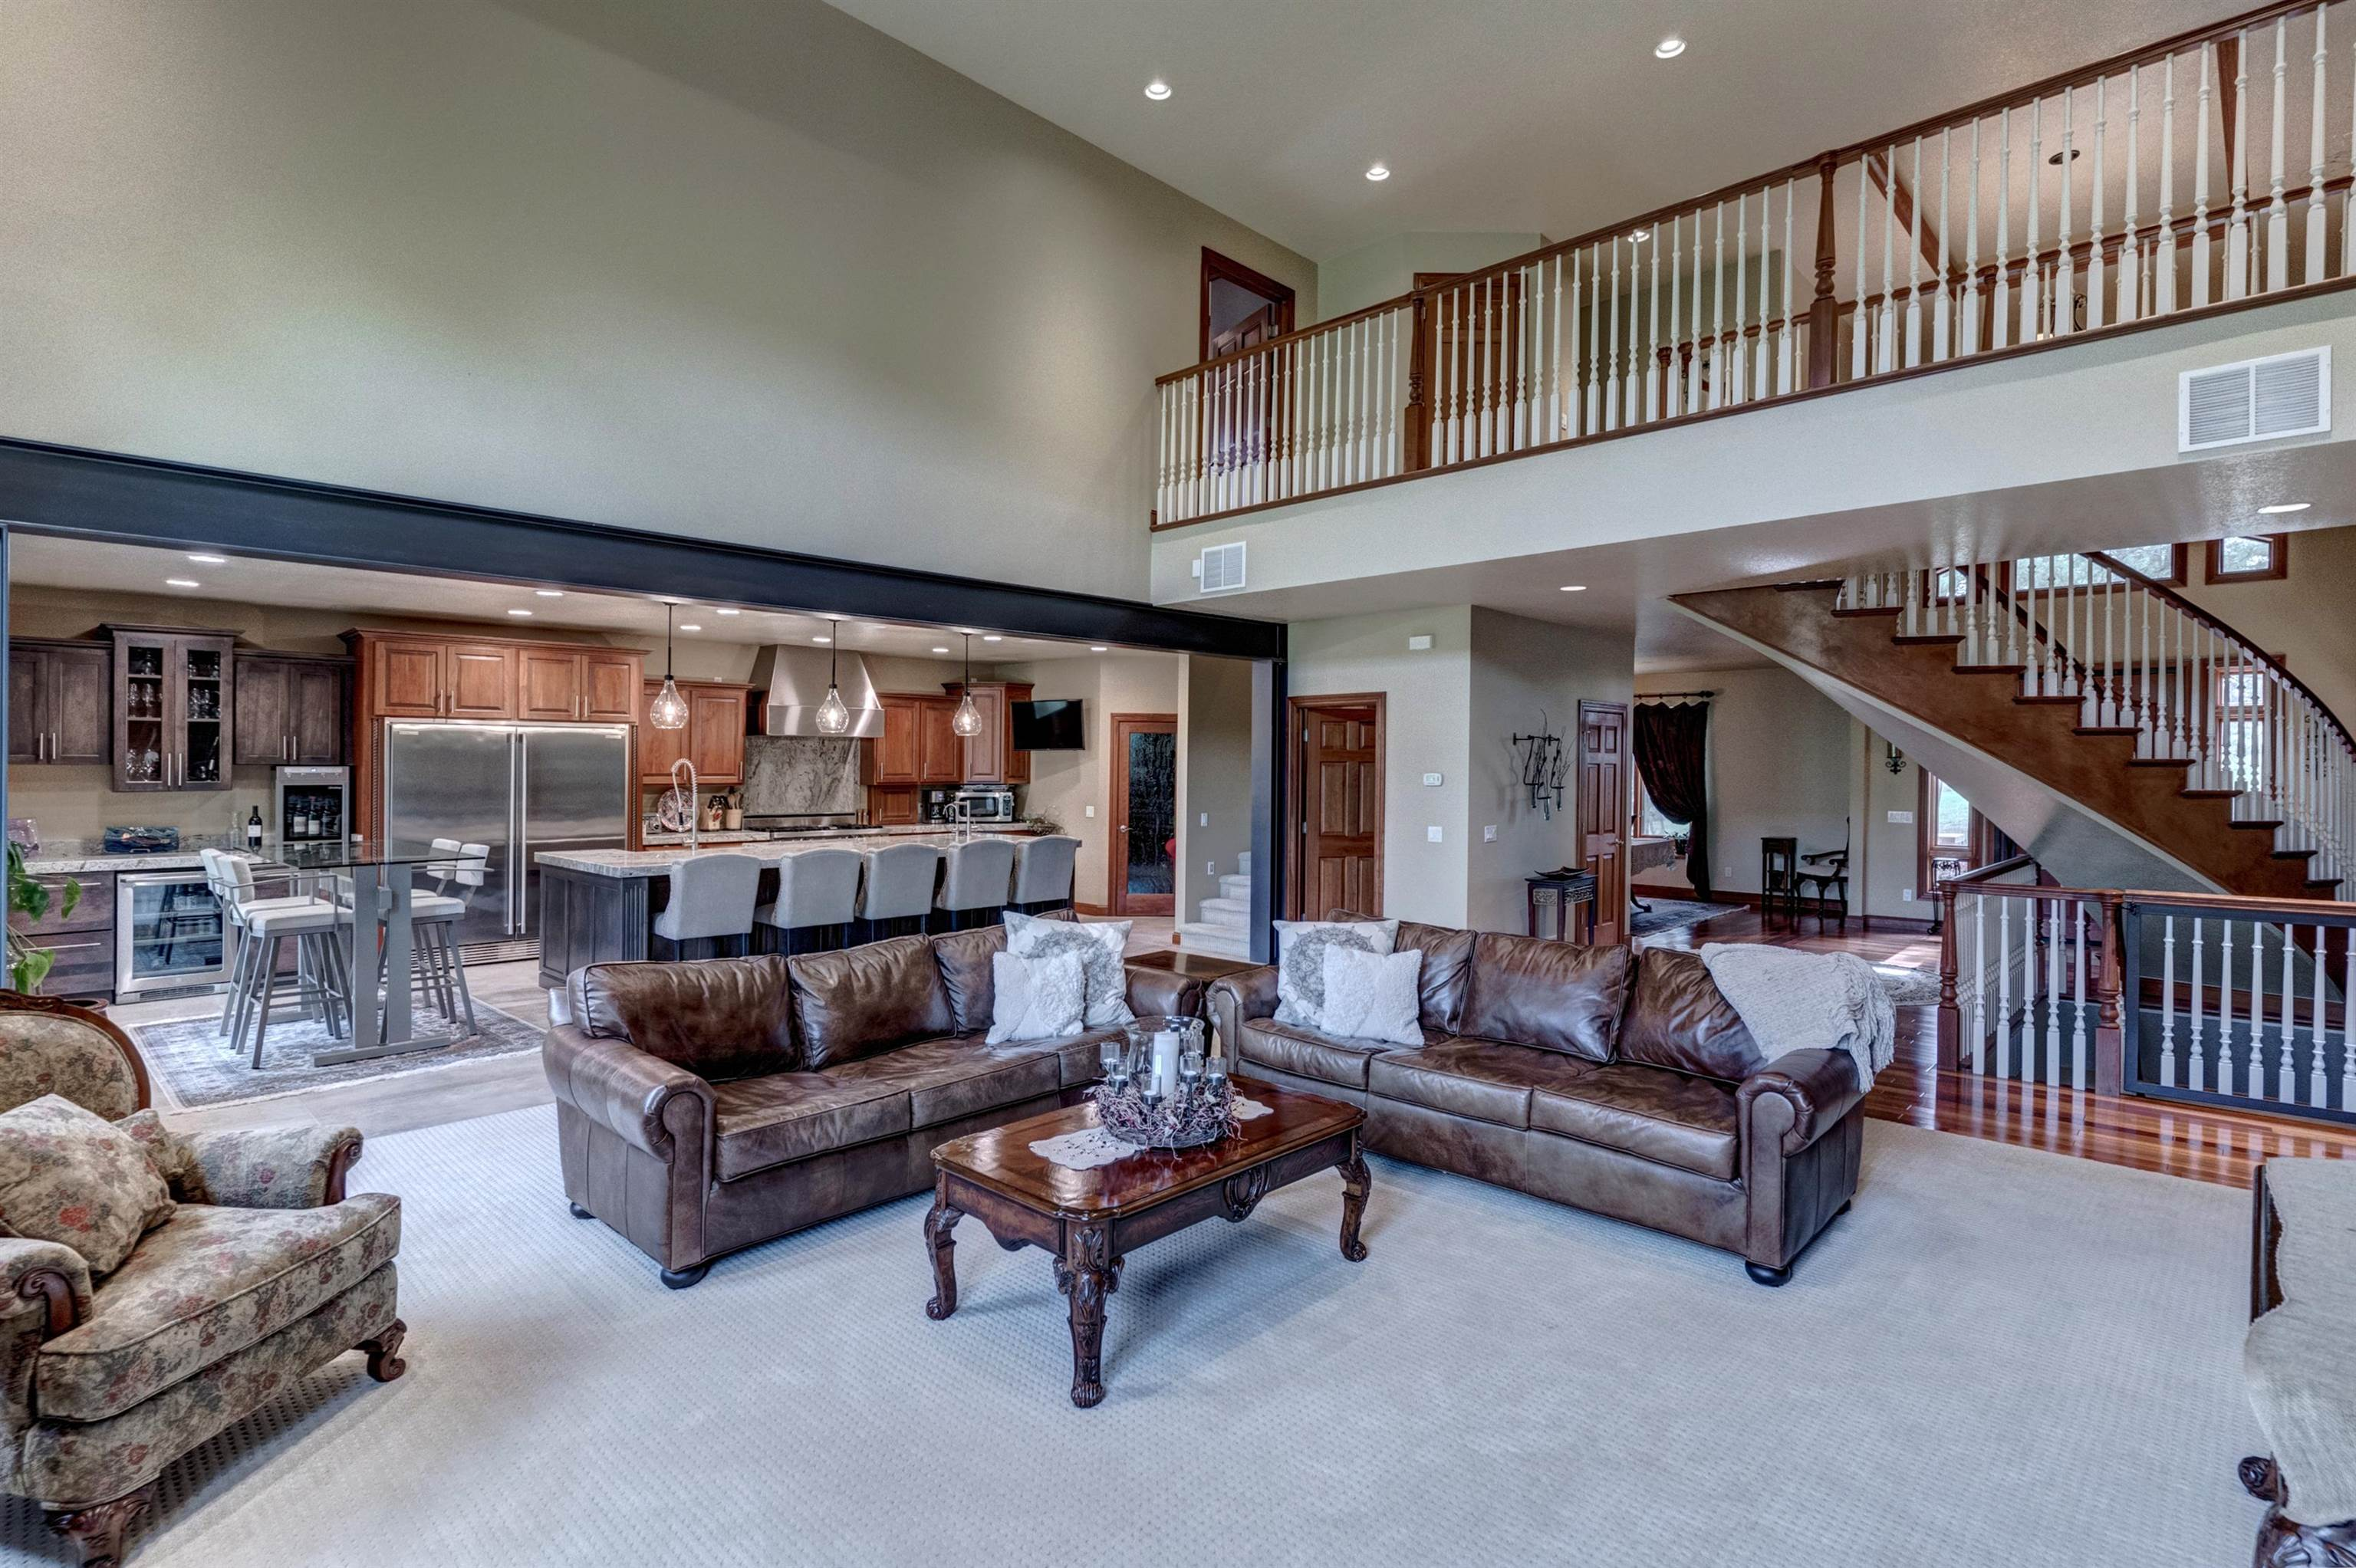 Listed by Lori Barnett at VIP Properties, 605-786-5817.  Luxury living only minutes from Rapid City!  This 5500+ square foot home is nestled on 7 treed acres off of Rimrock Hwy.  A winding custom staircase greets you at the door and ushers you into an expansive great room & kitchen which is perfect for entertaining!  A massive island is the centerpiece of the kitchen which includes a wine bar area, large pantry, & granite countertops to round out this gourmet kitchen.  Off of the kitchen is a large deck with fireplace & wood fueled pizza oven.  The main level also offers a formal dining room, office, half bath, & large laundry room.  The upper level can be accessed by the main staircase or by an additional flight that is off the kitchen.  The walkway is open to the living room & is flanked on one side by the large master bedroom & bath (which includes a jet tub, steam shower, & private deck).  The opposite side of the open walk way offers 2 additional bedrooms with a shared bath.